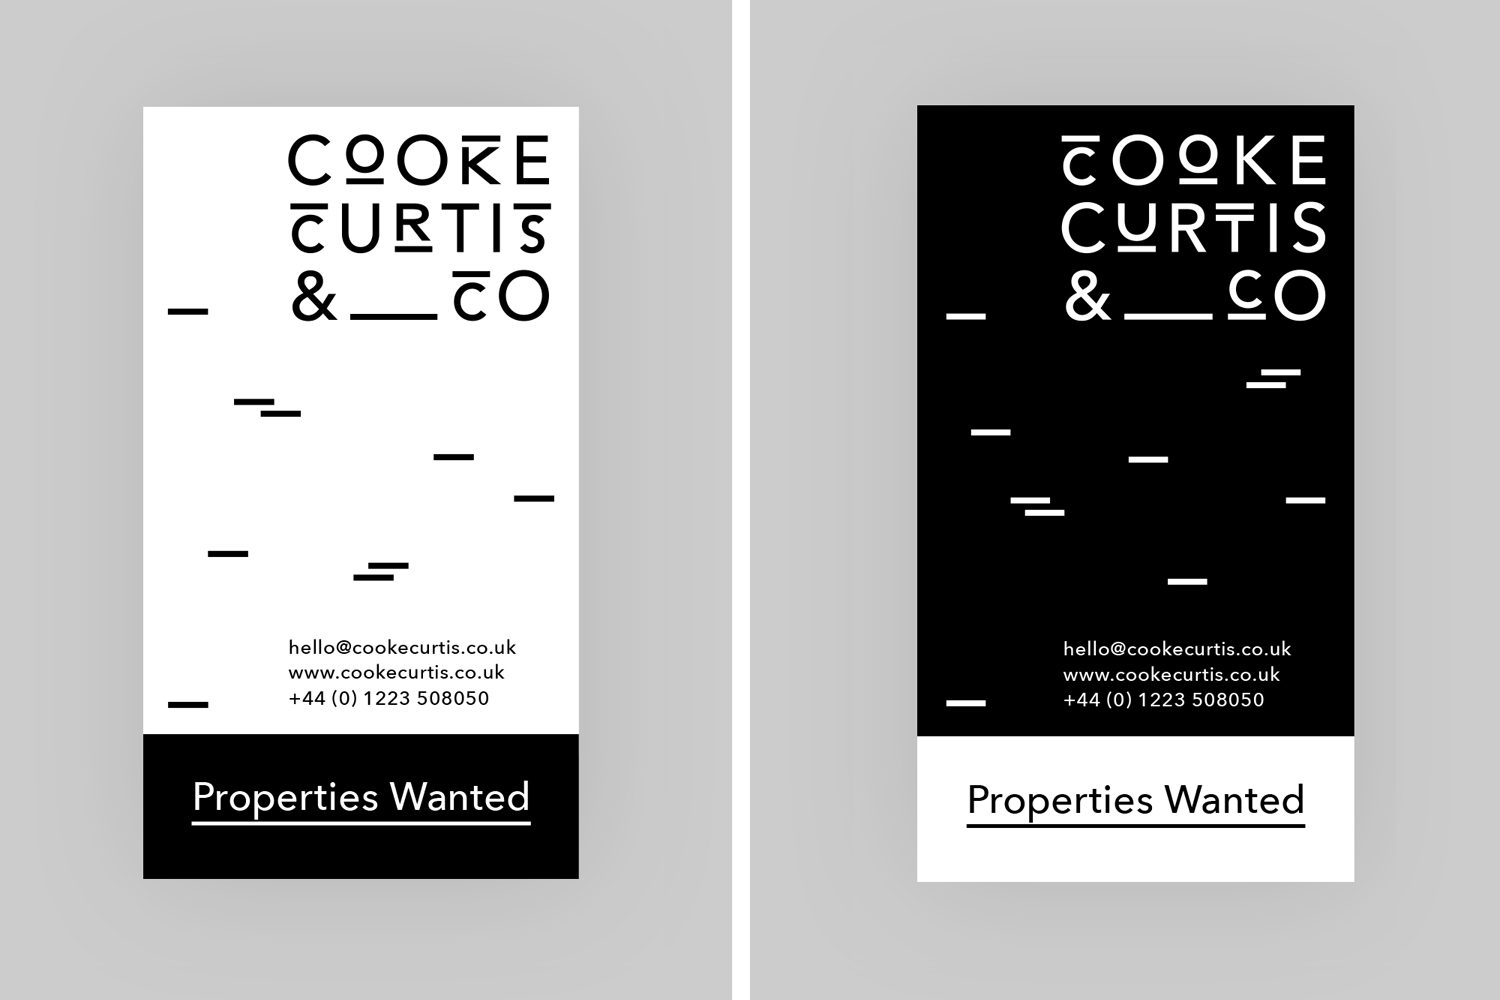 20-Cooke-Curtis-Co-Branding-Signage-Stationery-by-The-District-on-BPO.jpg